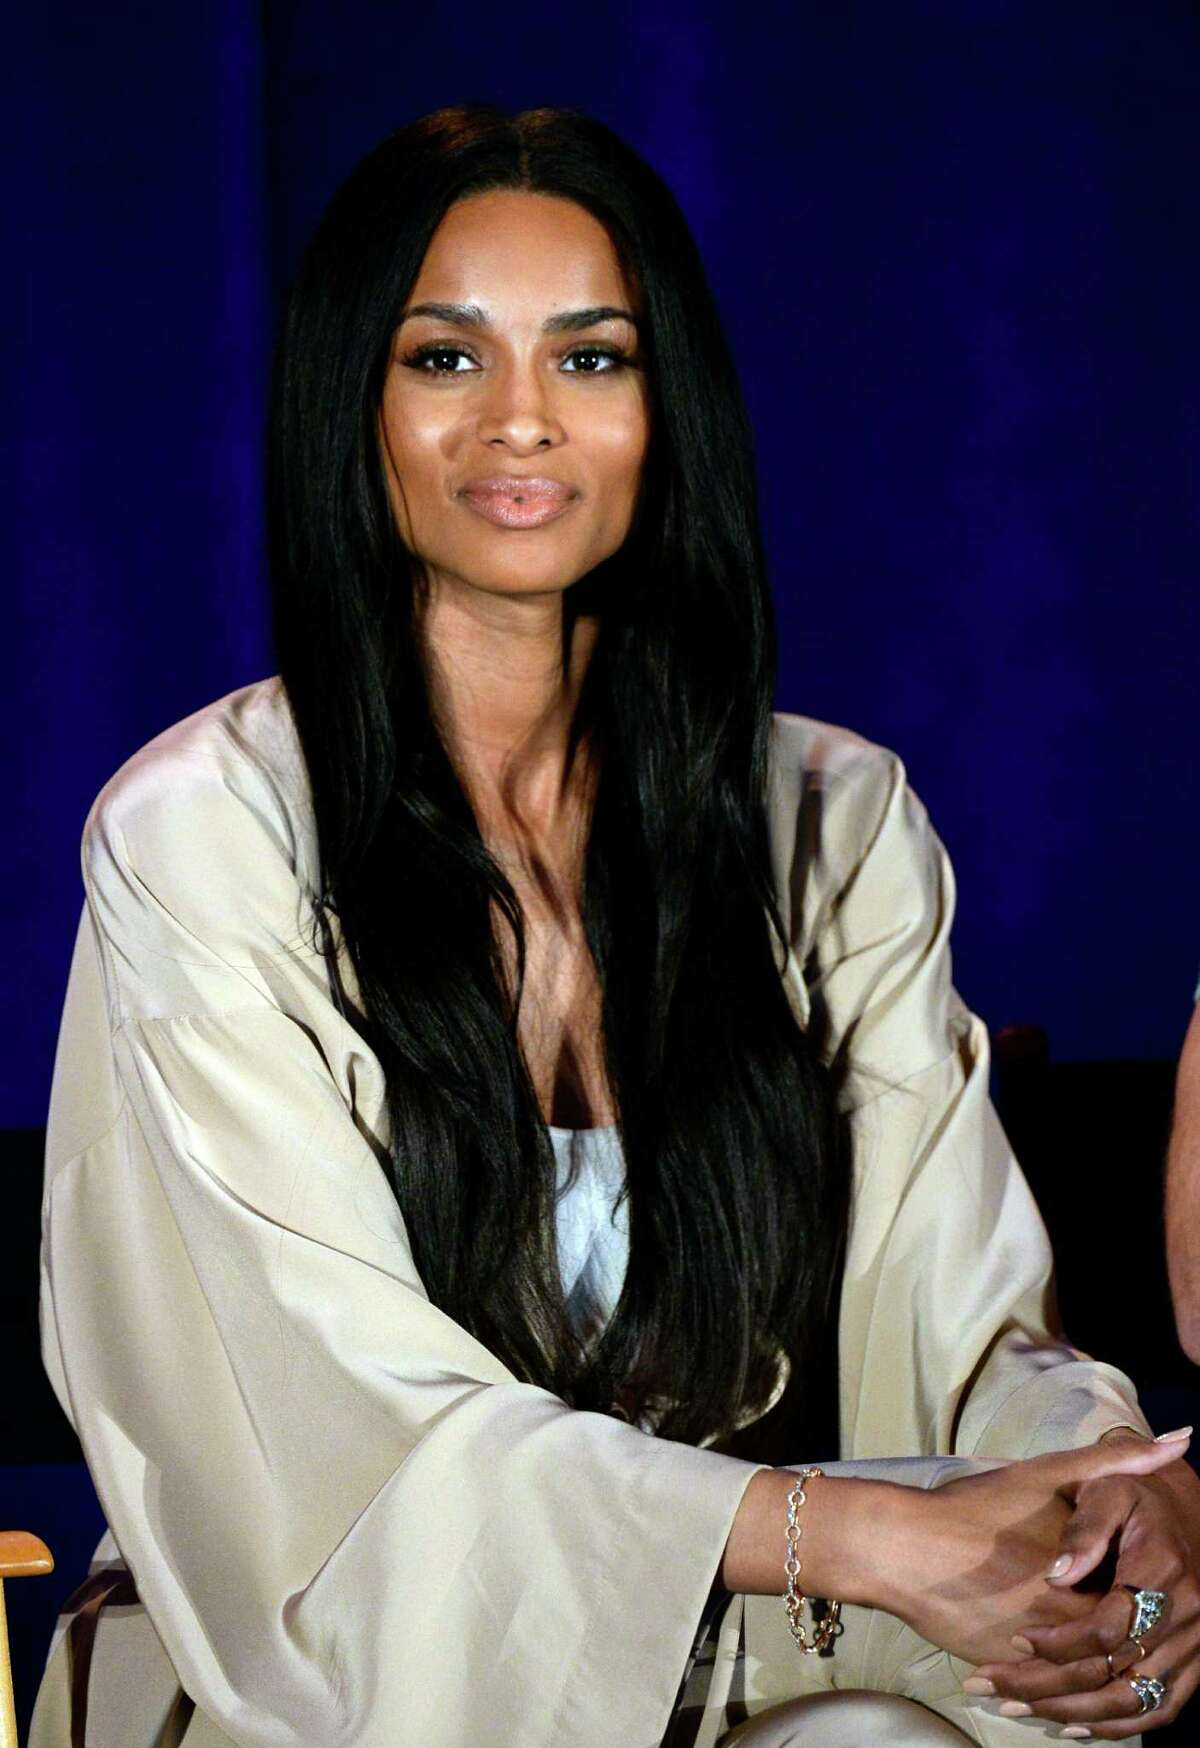 Meet Ciara If you don't recognize her from her hit songs